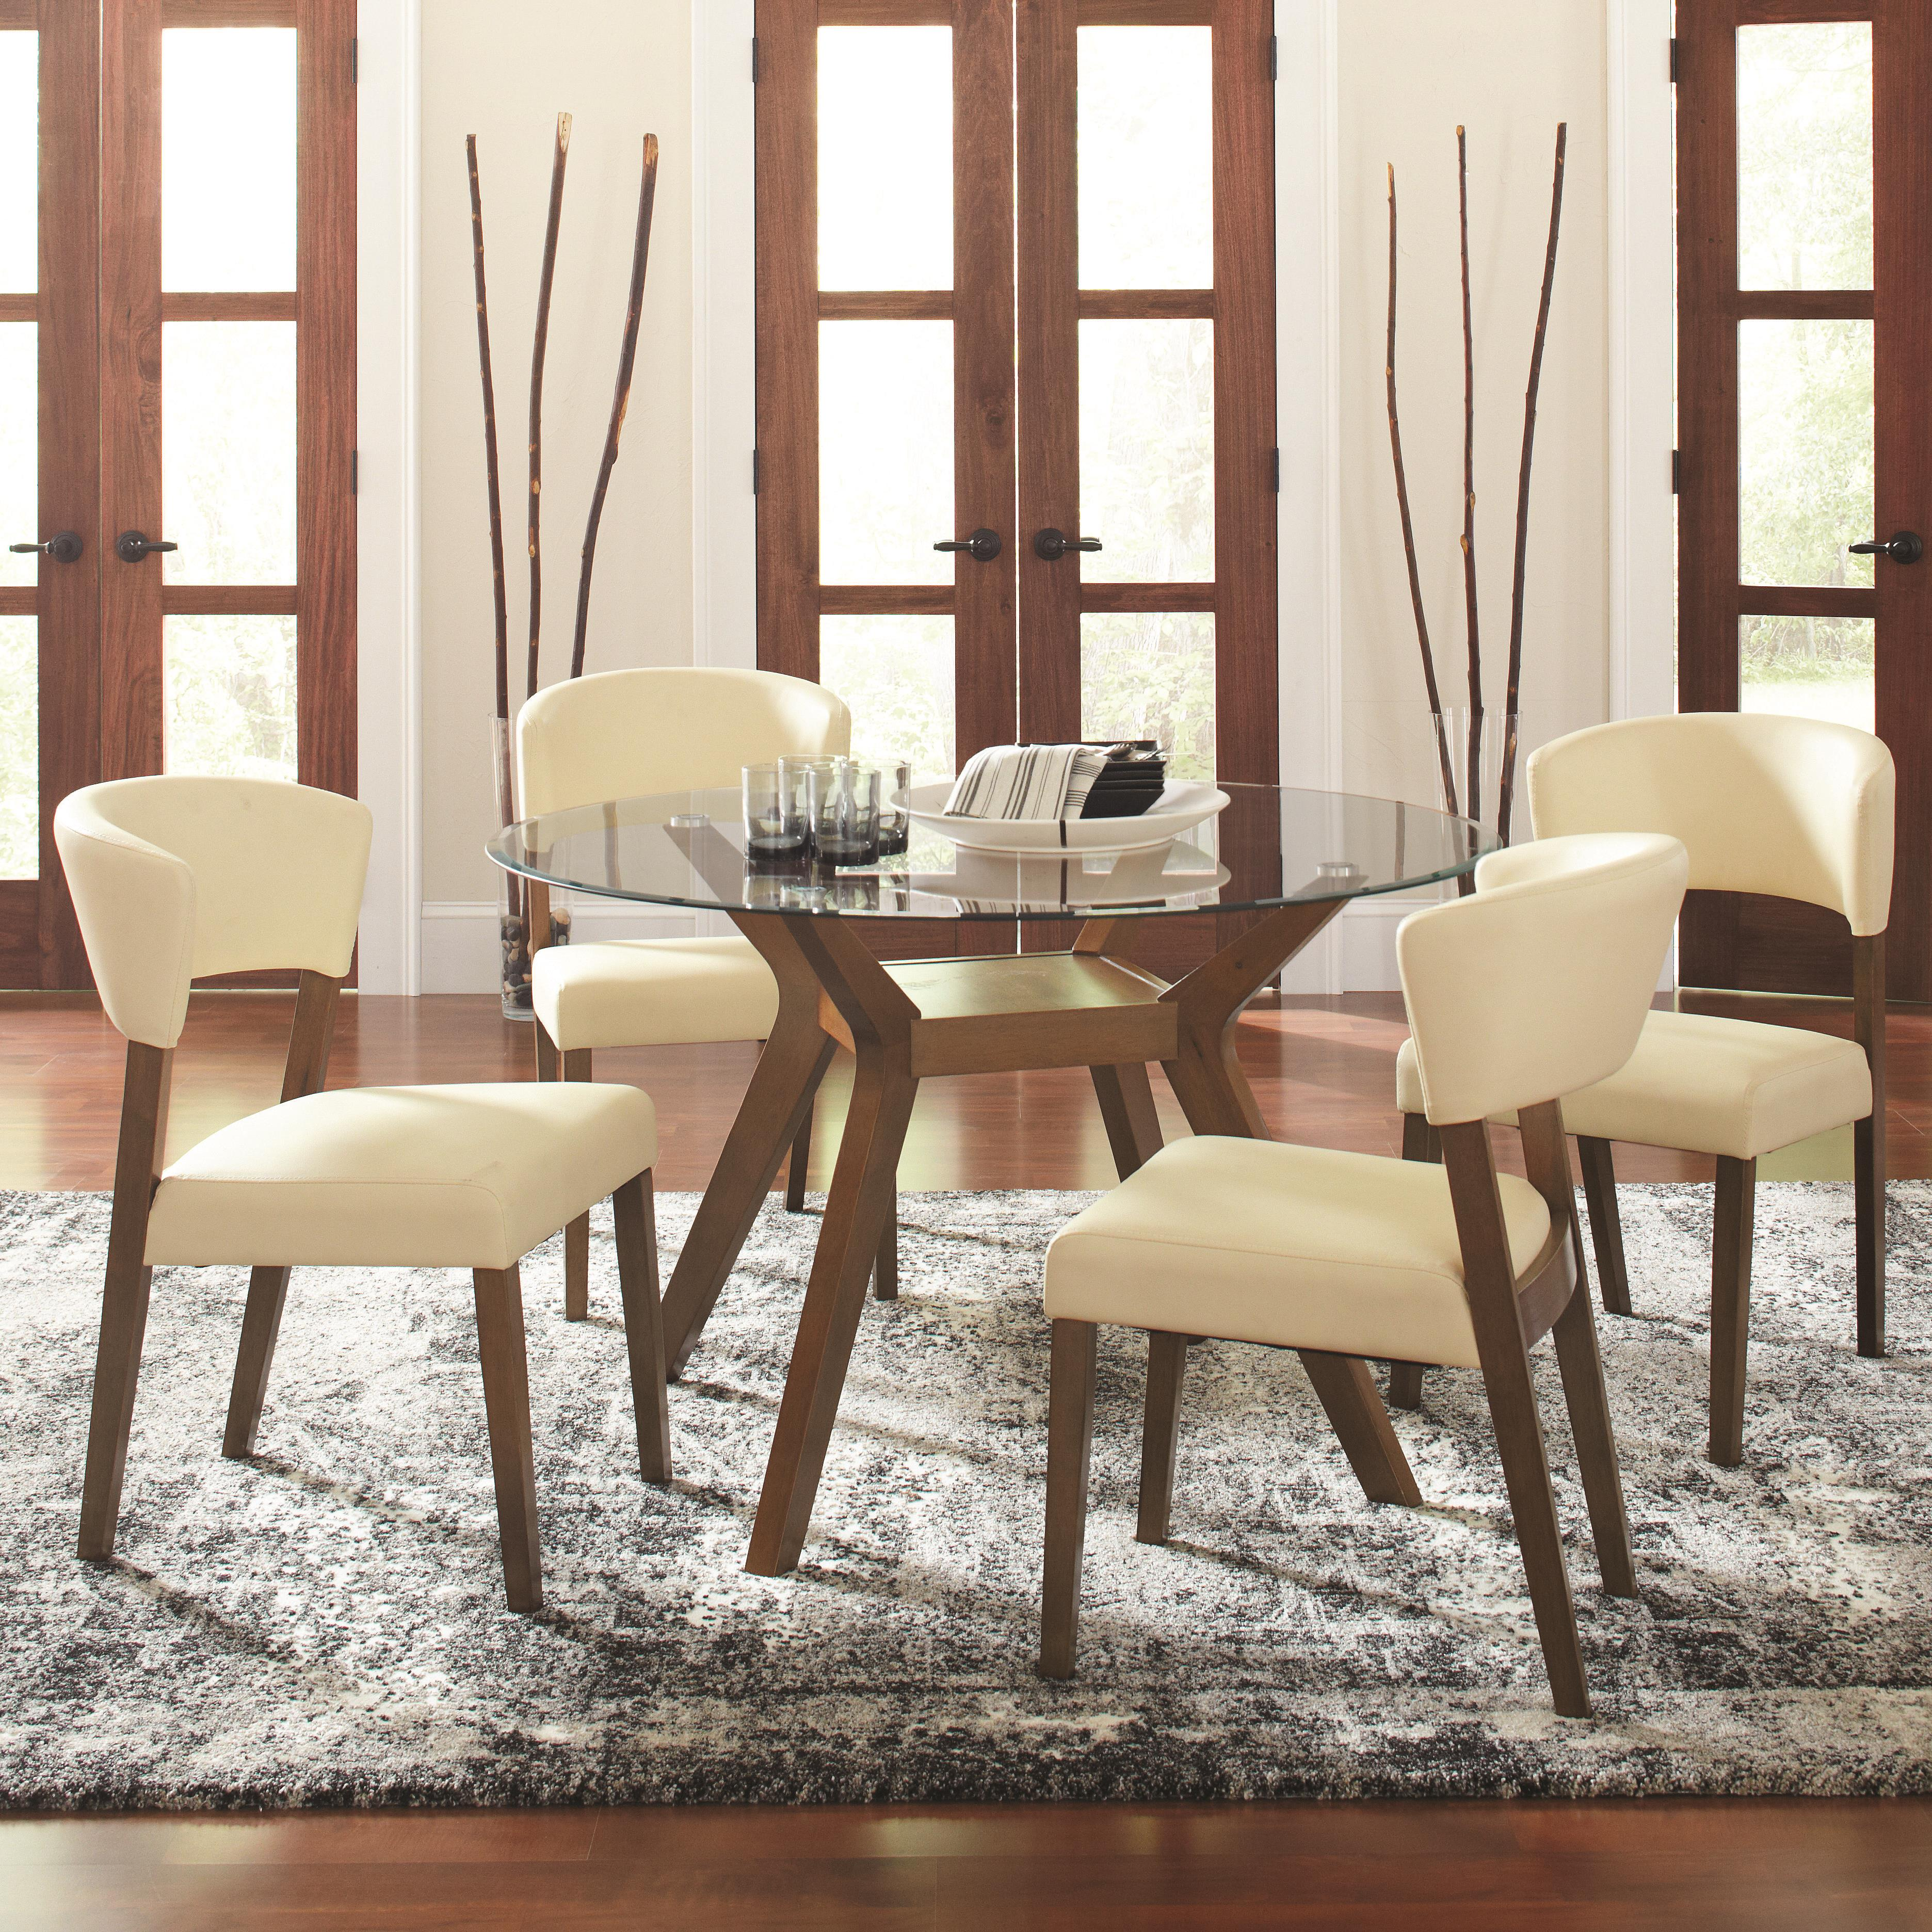 Coaster Paxton 5 Piece Round Dining Table Set with